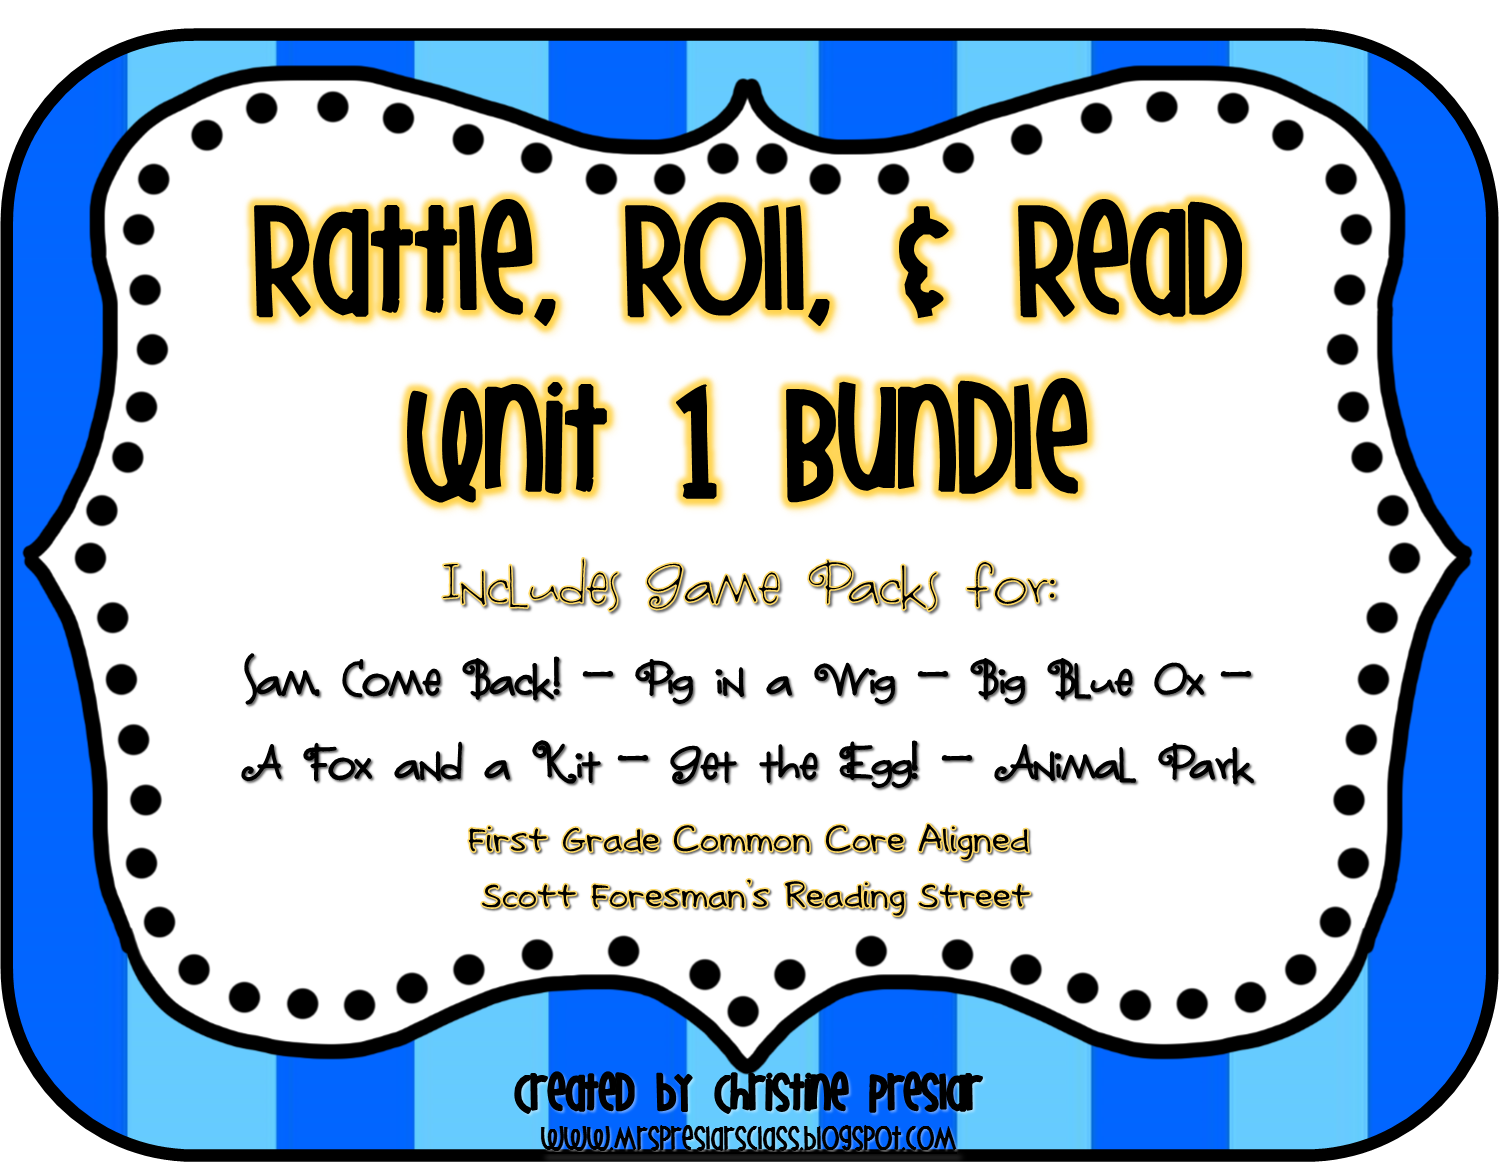 Educational Reading Games For 1st Grade - free online first grade ...